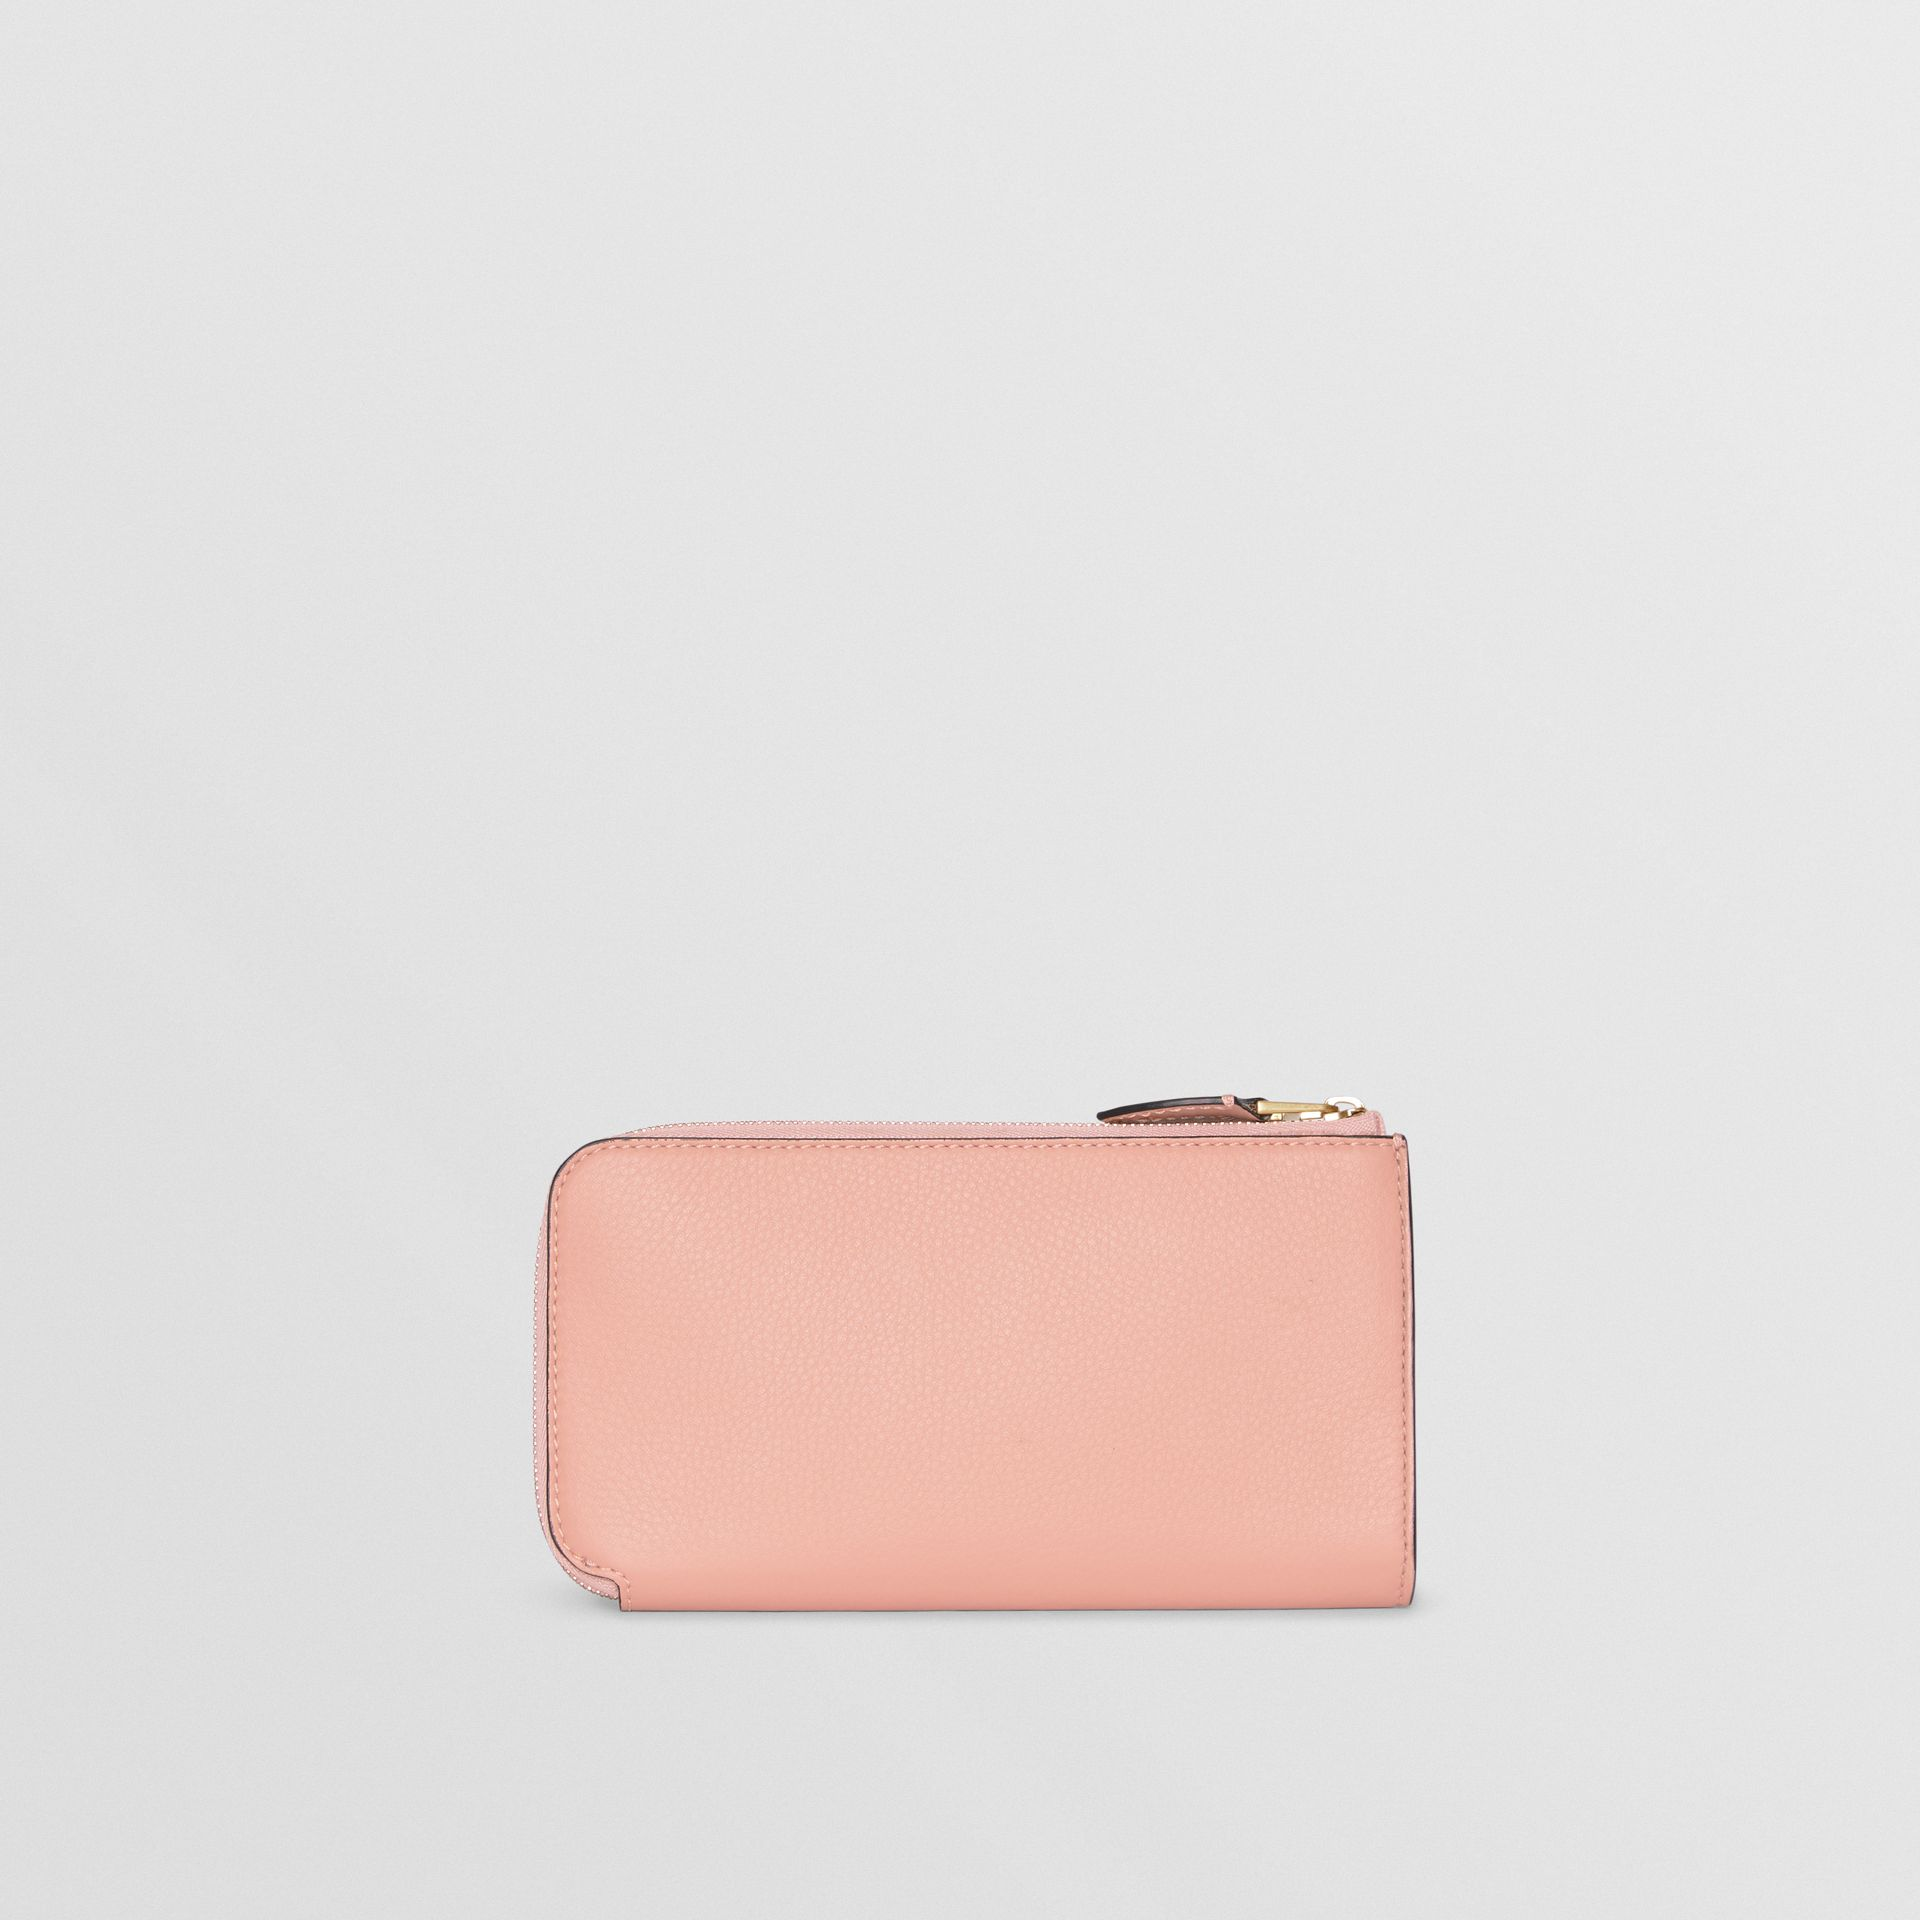 Two-tone Leather Ziparound Wallet and Coin Case in Ash Rose - Women | Burberry Canada - gallery image 6